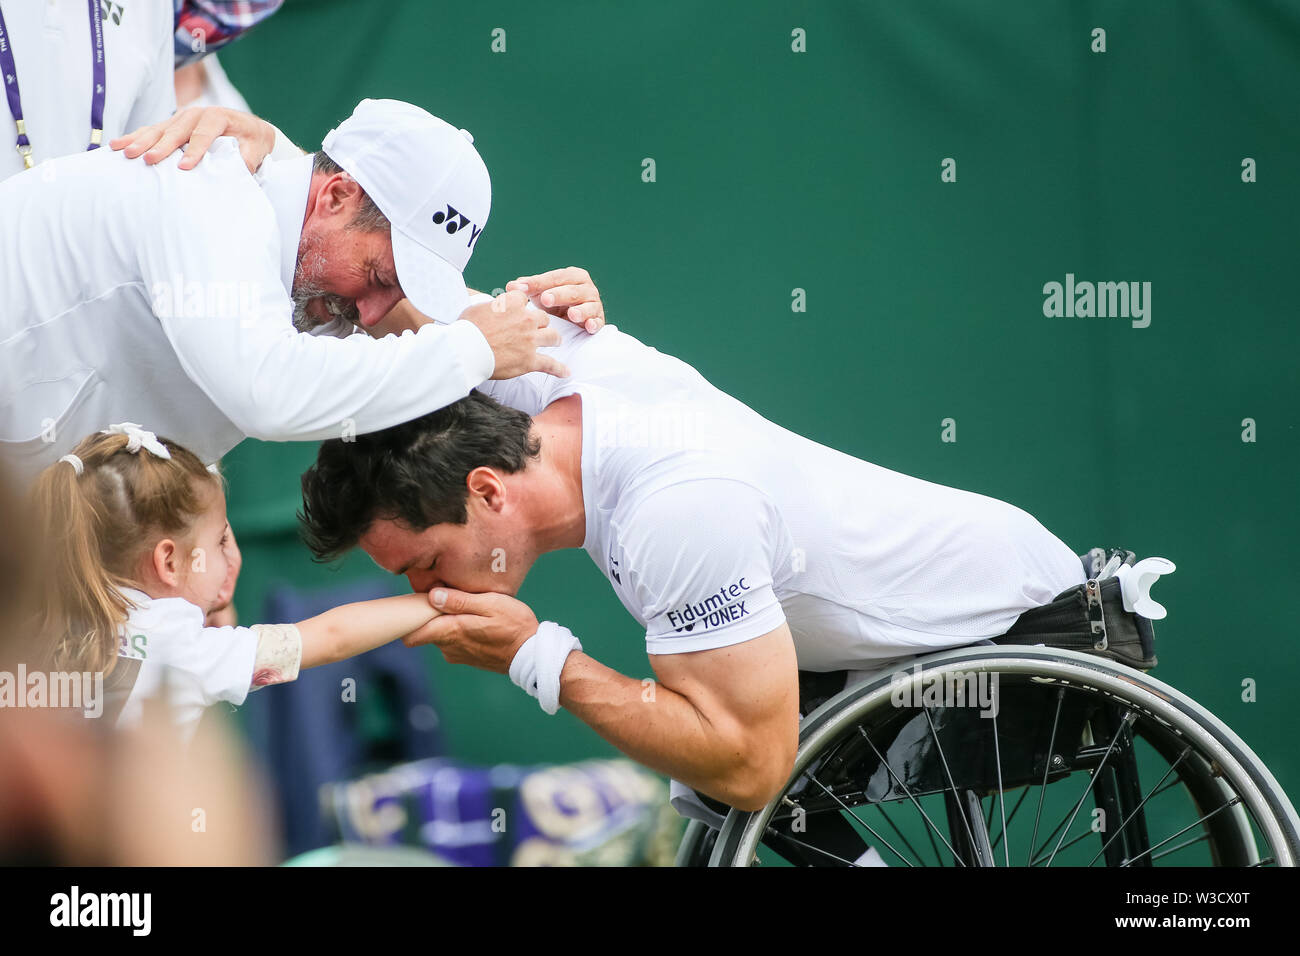 Wimbledon, London, UK. 14th July 2019. Gustavo Fernandez of Argentina kisses his daughter after winning the men's wheelchair singles final match of the Wimbledon Lawn Tennis Championships against Shingo Kunieda of Japan at the All England Lawn Tennis and Croquet Club in London, England on July 14, 2019. Credit: AFLO/Alamy Live News - Stock Image